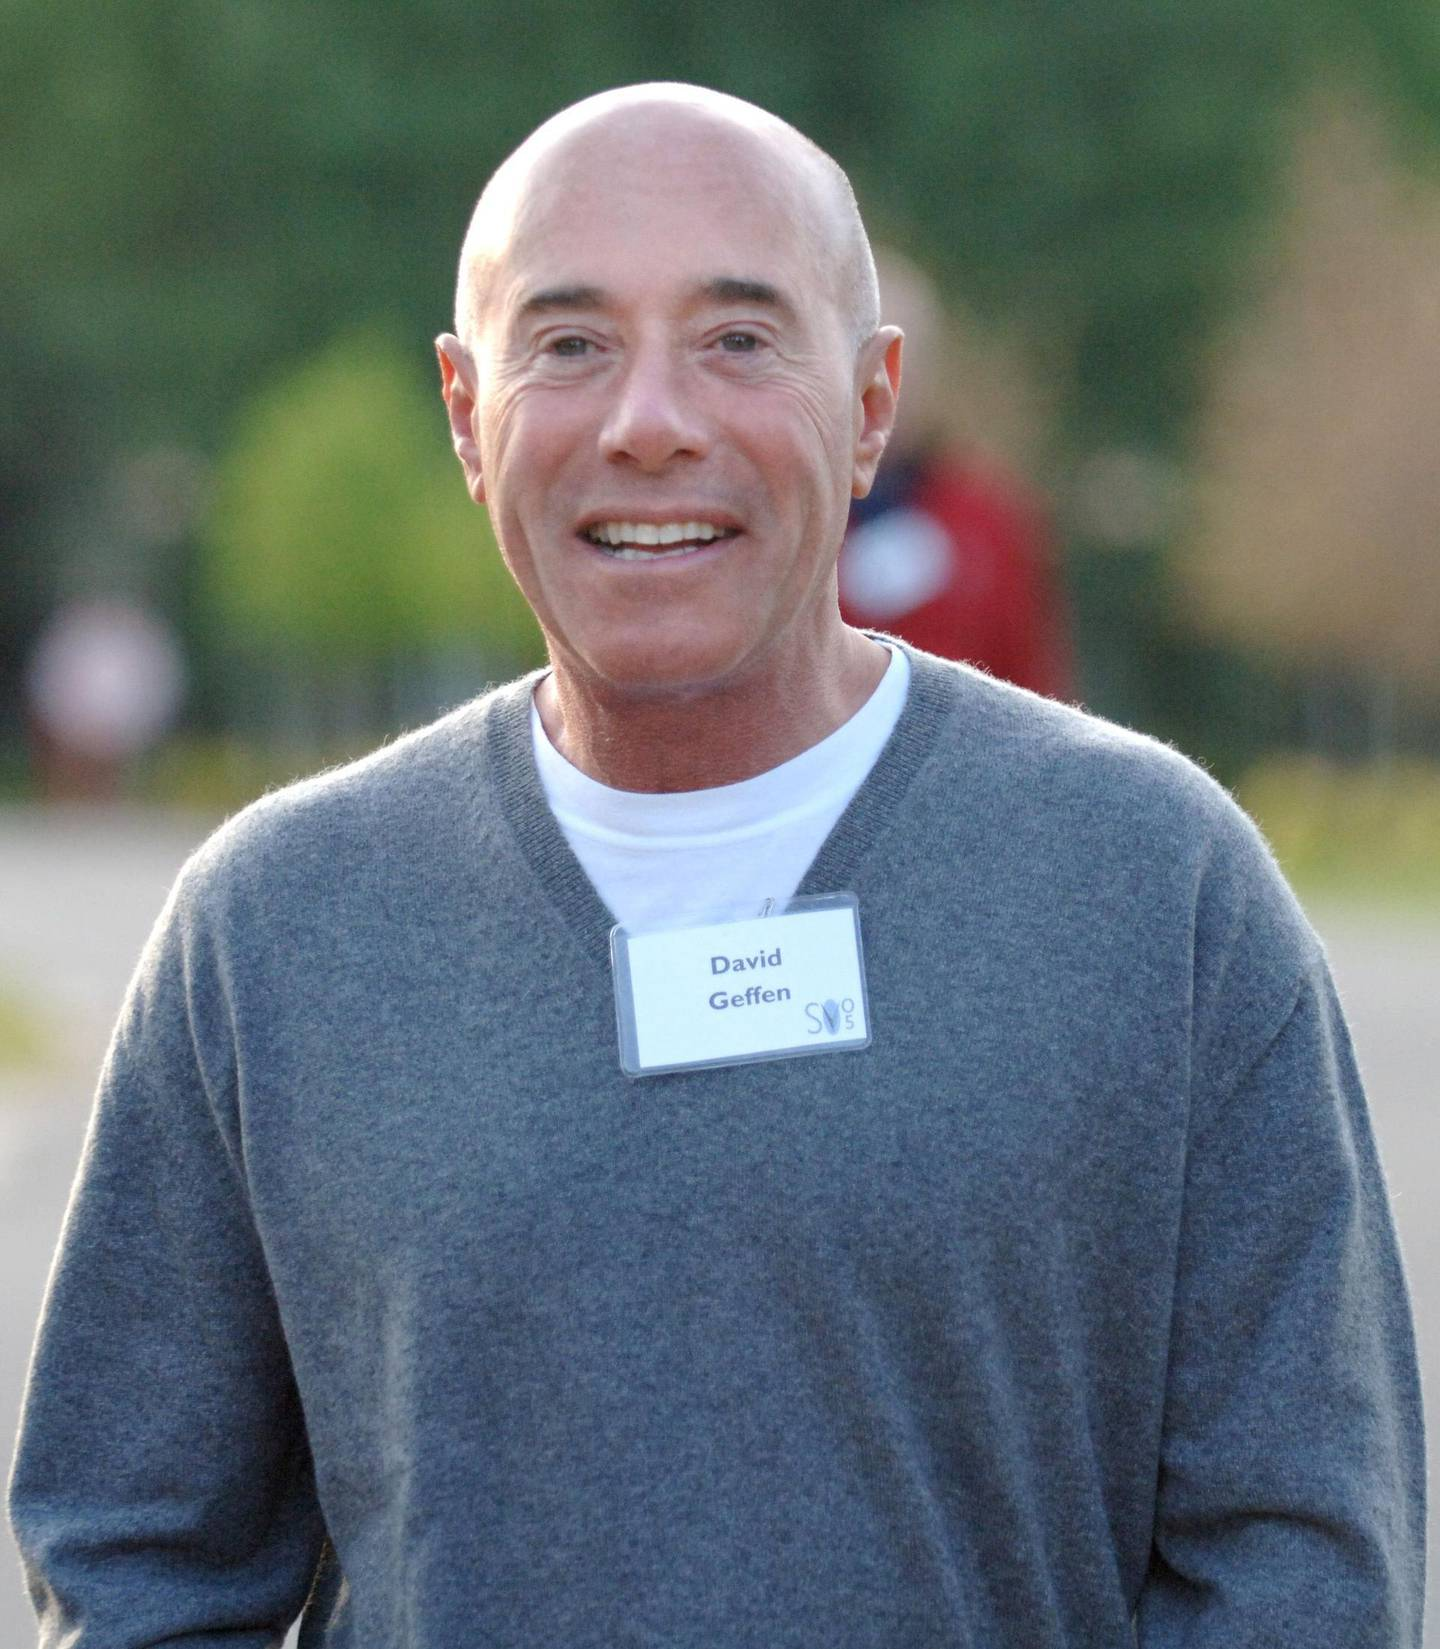 DreamWorks SKG co-founder and partner, David Geffen, walks to the Inn at the annual Allen and Company Media and Technology Conference Wednesday, July 7, 2005 in Sun Valley, Idaho. Photographer: Matthew Staver/Bloomberg News.